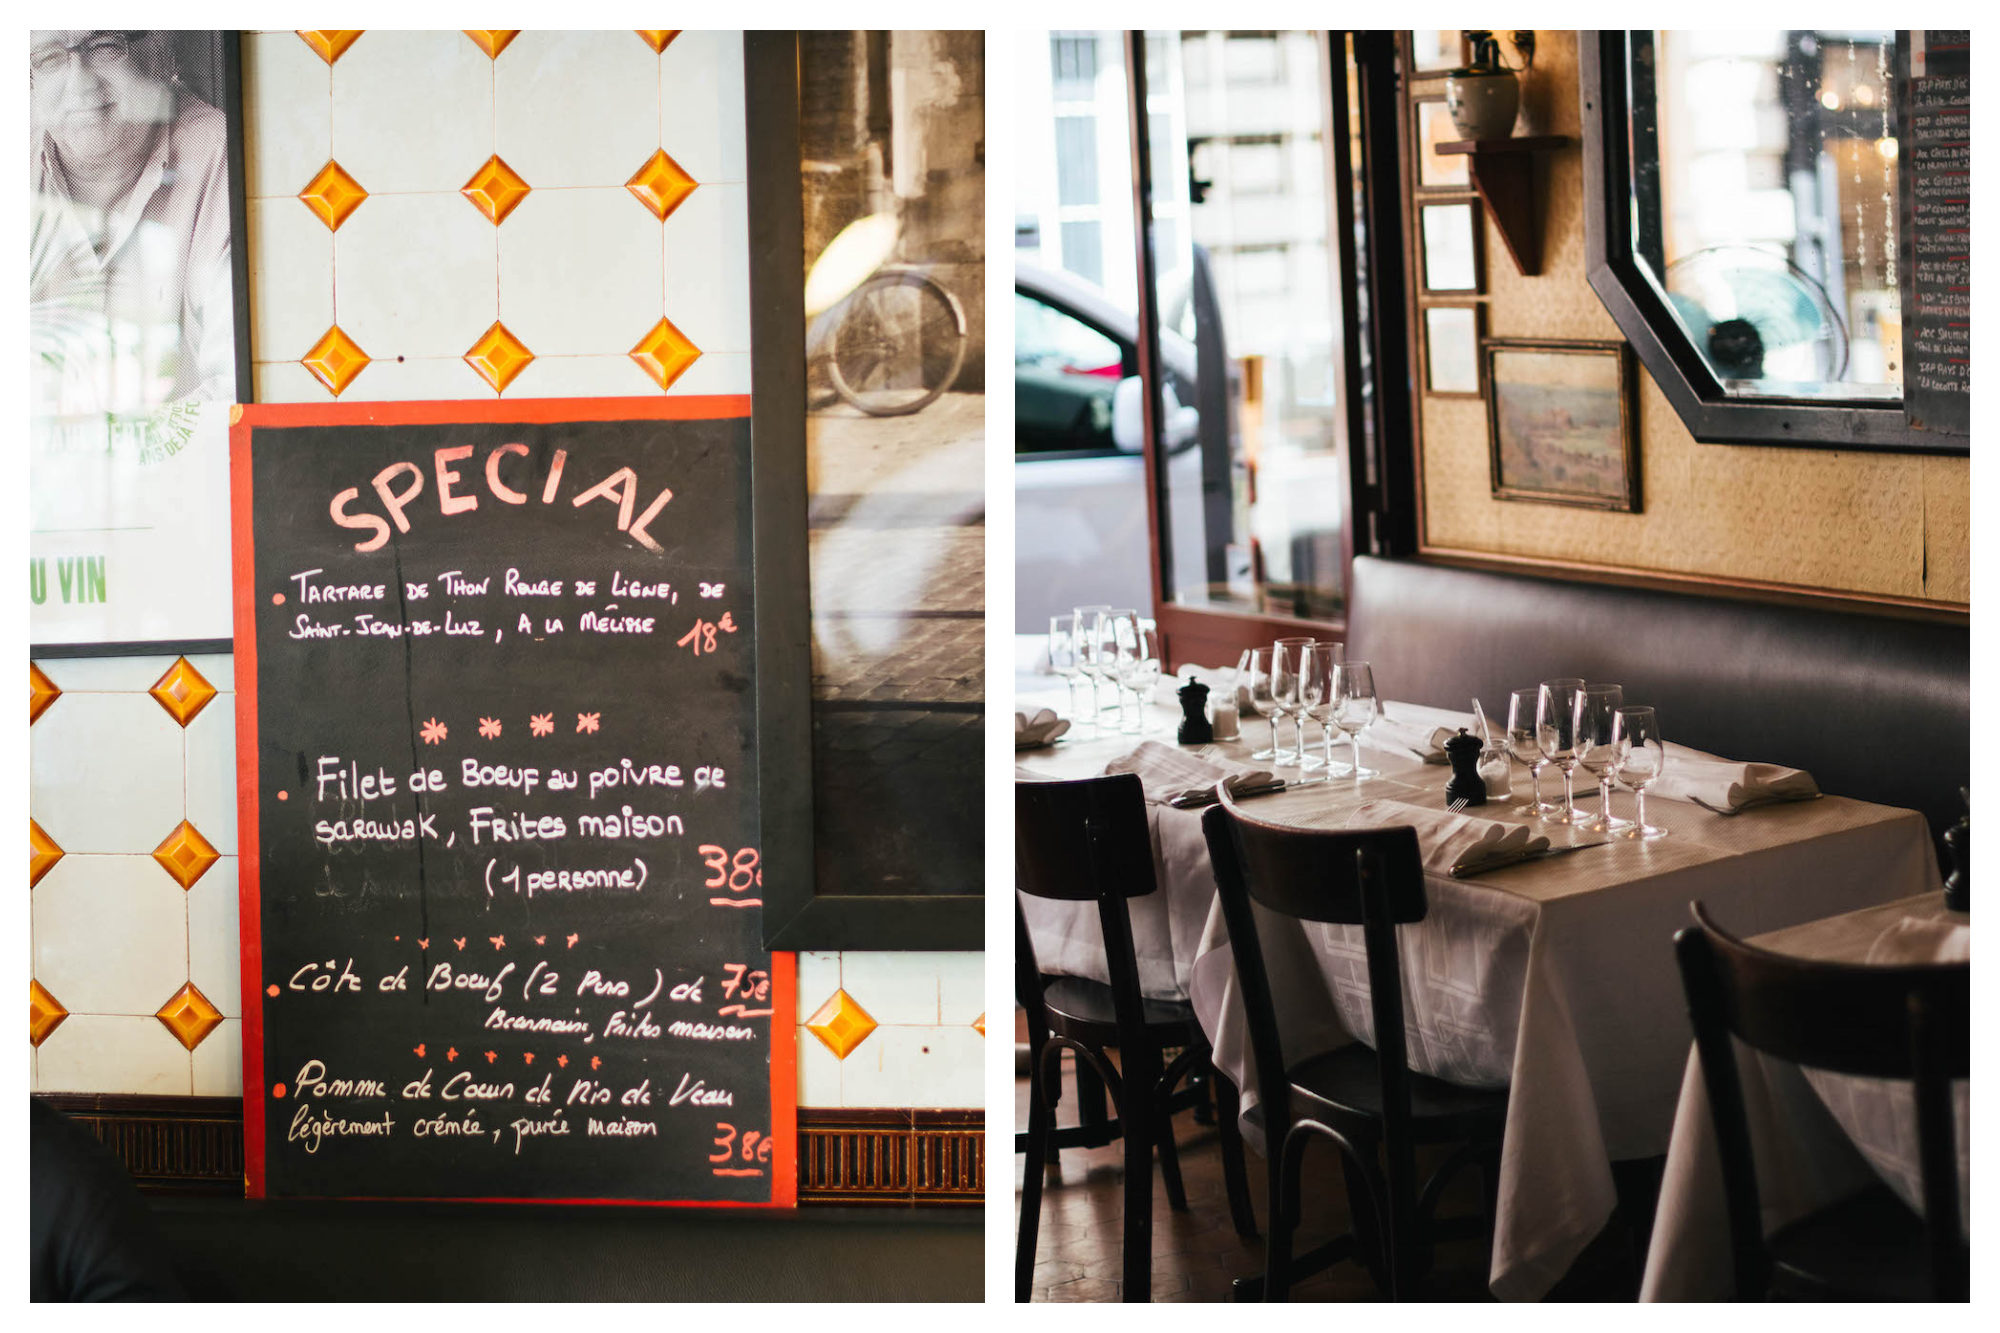 A specals' board outside the Bistrot Paul Bert in Paris (left). The leather banquettes and tables at the Bistrot Paul Bert with white tablecloths in Paris' 11th neighborhood (right).